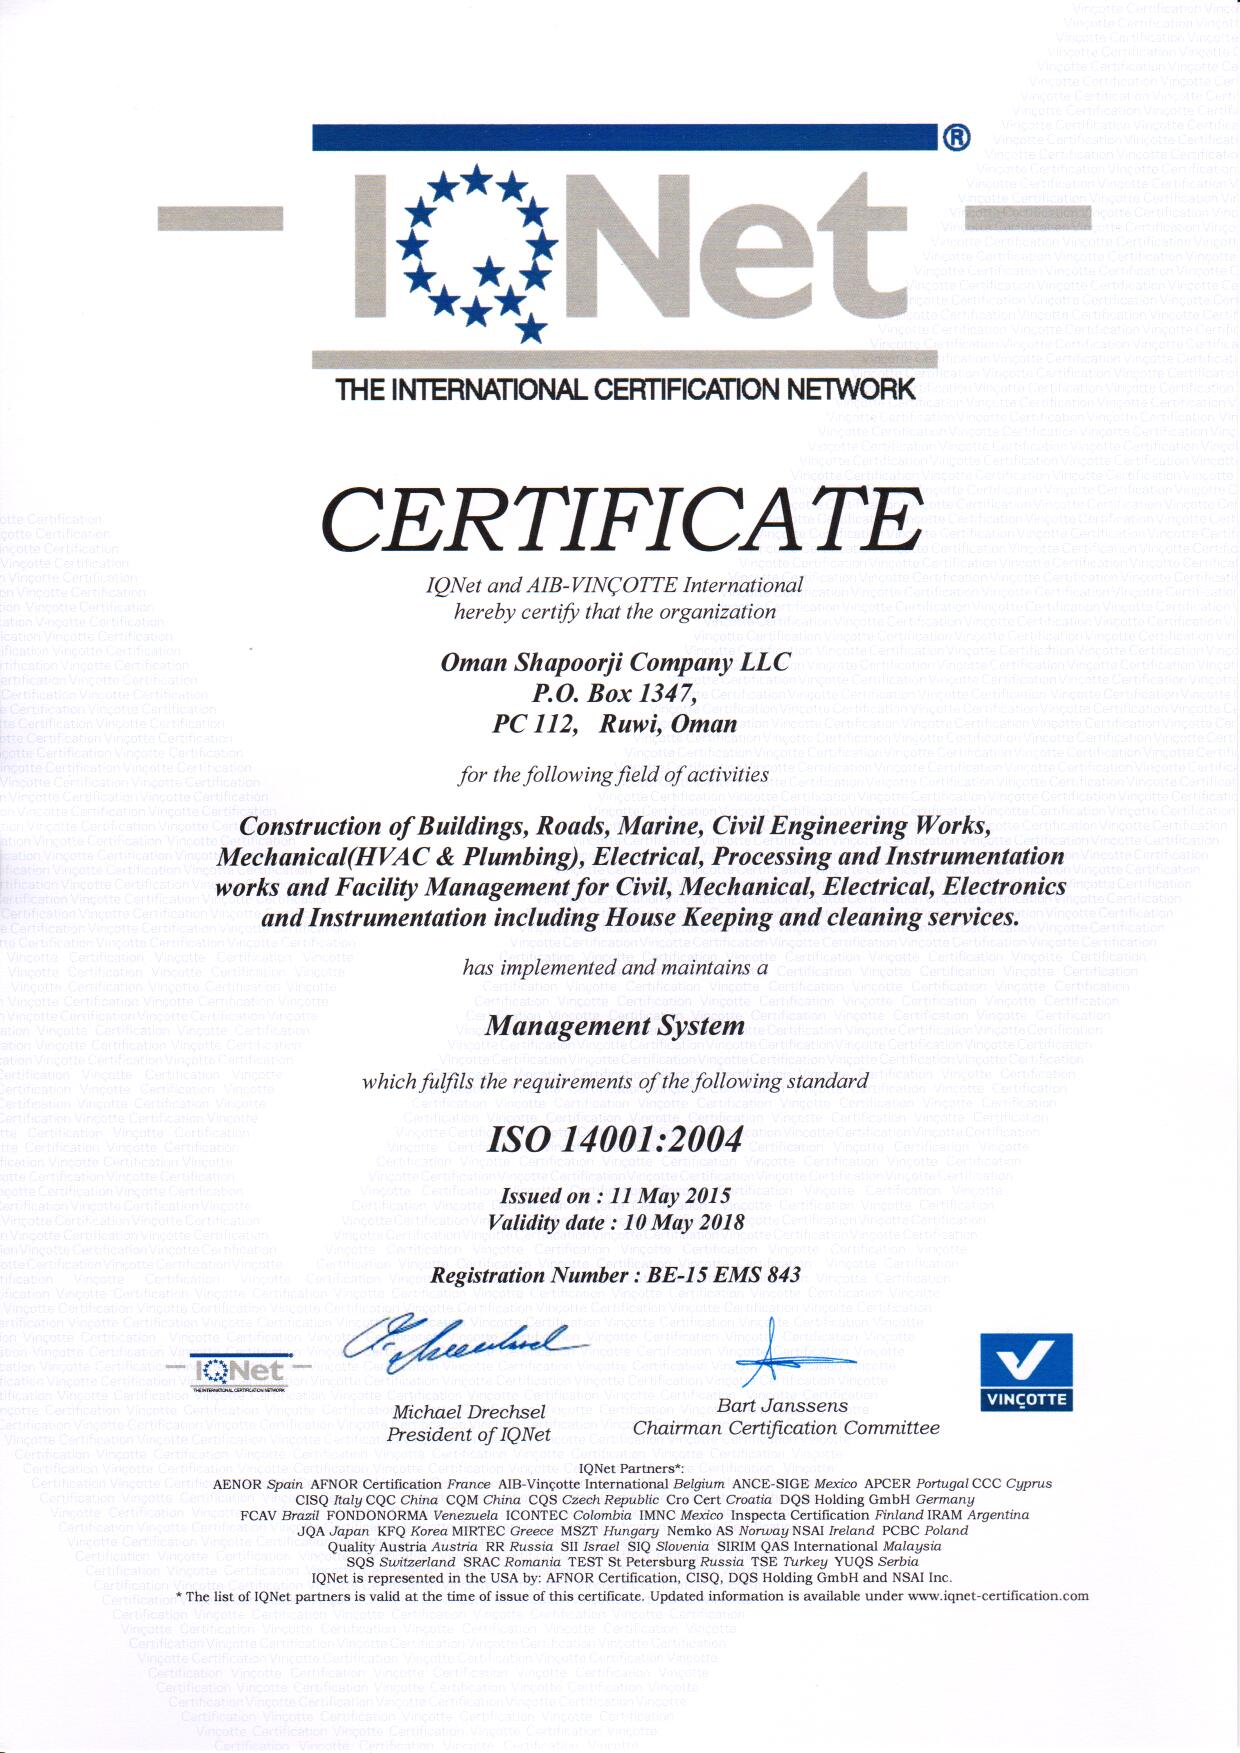 ISO 14001 Certificate May 2015 IQNET